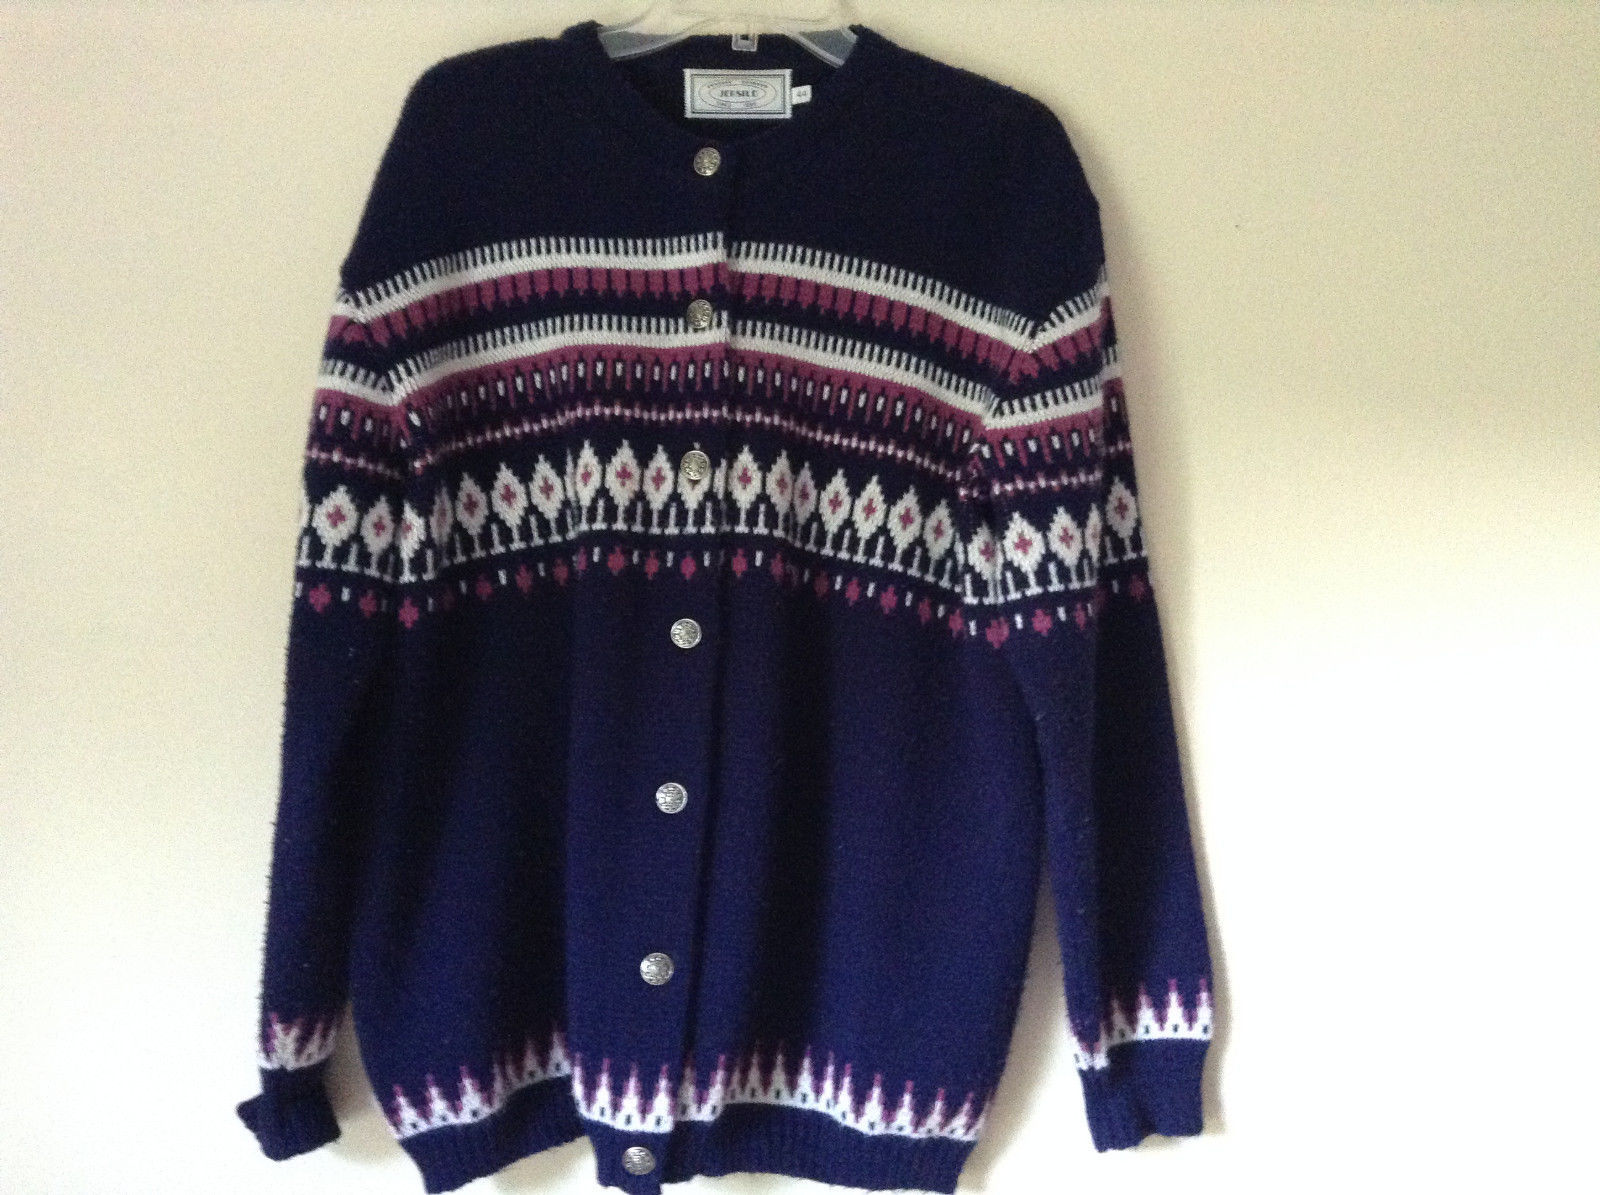 Navy Blue Button Down Sweater Design White and Violet by Jersilo Size 44